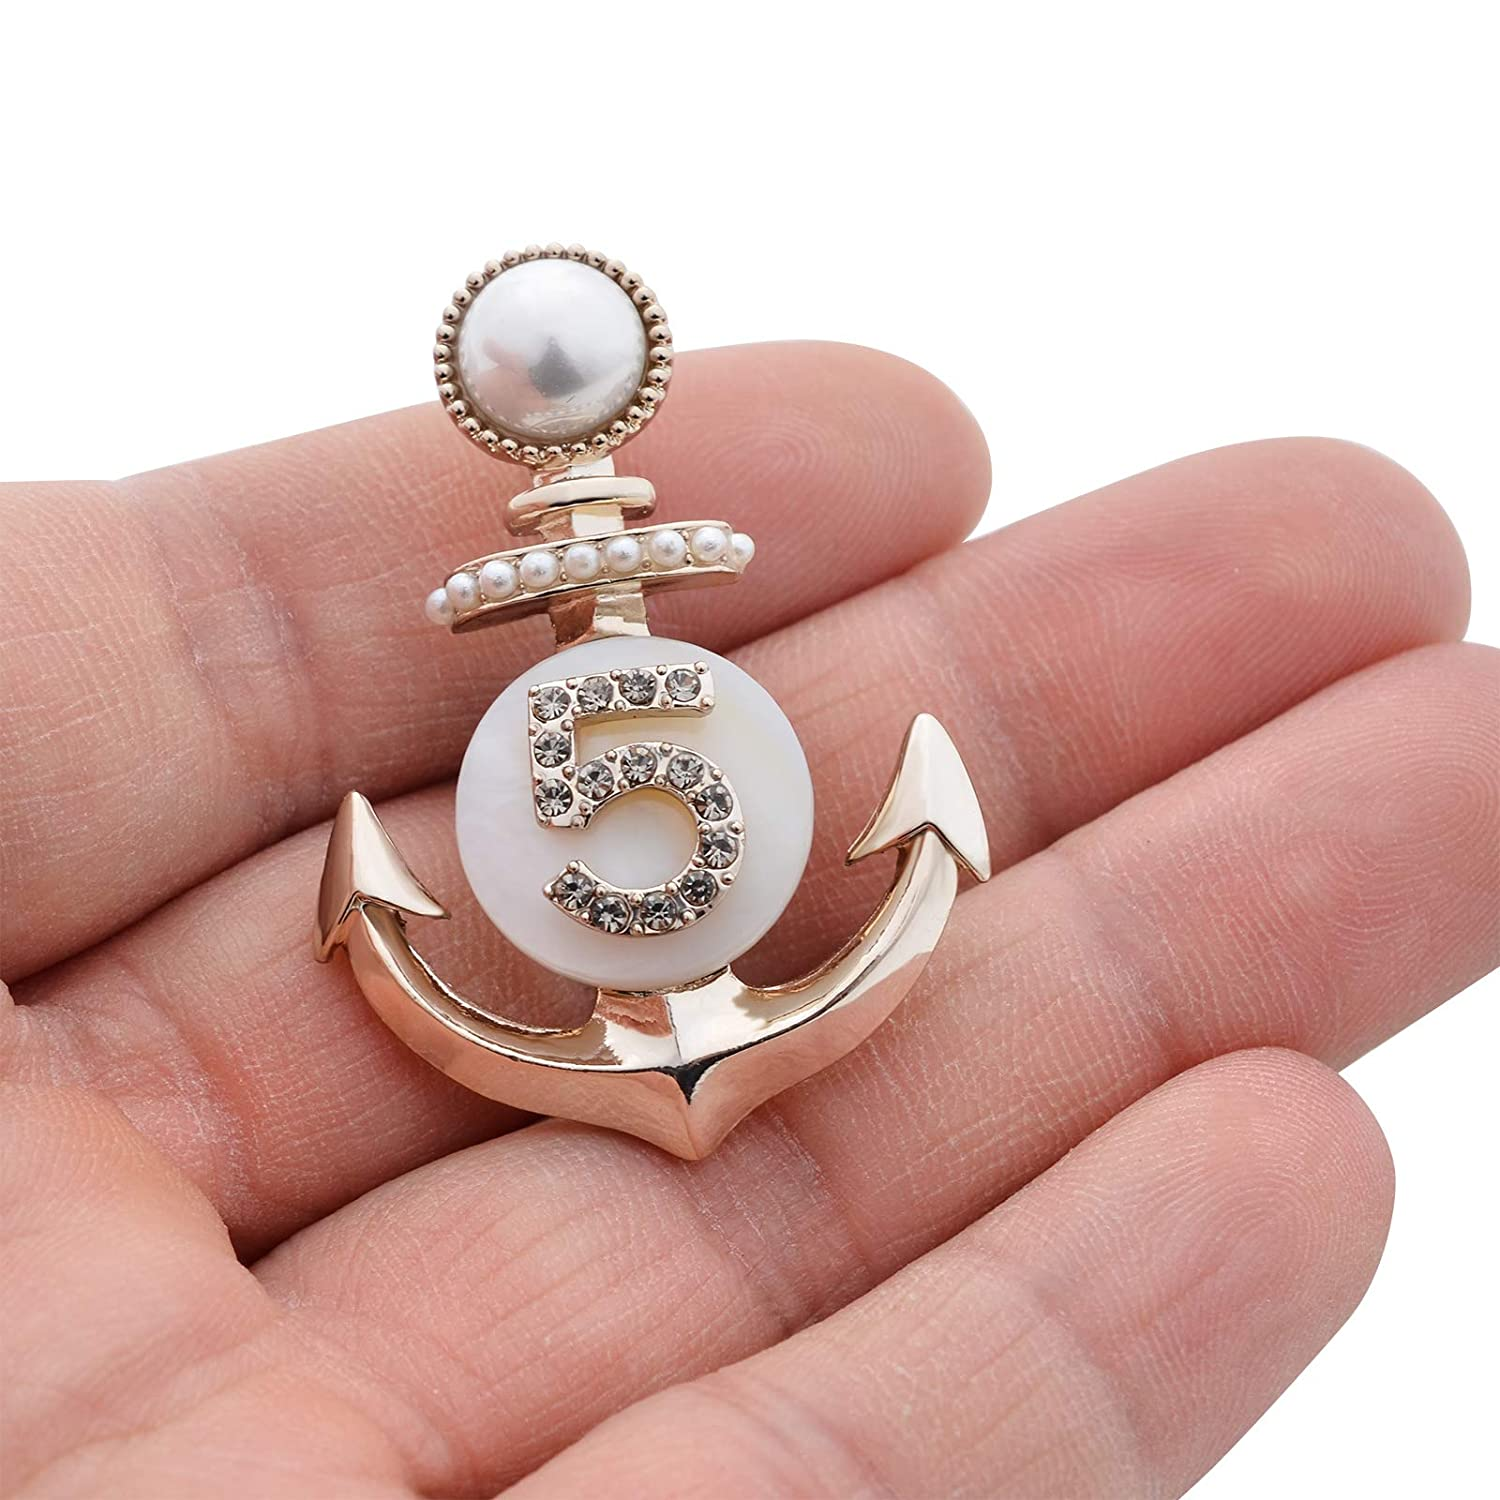 Fenni Vintage Crystal Pearl Nautical Anchor Number 5 Brooch Pin Lapel Pin for Men Women